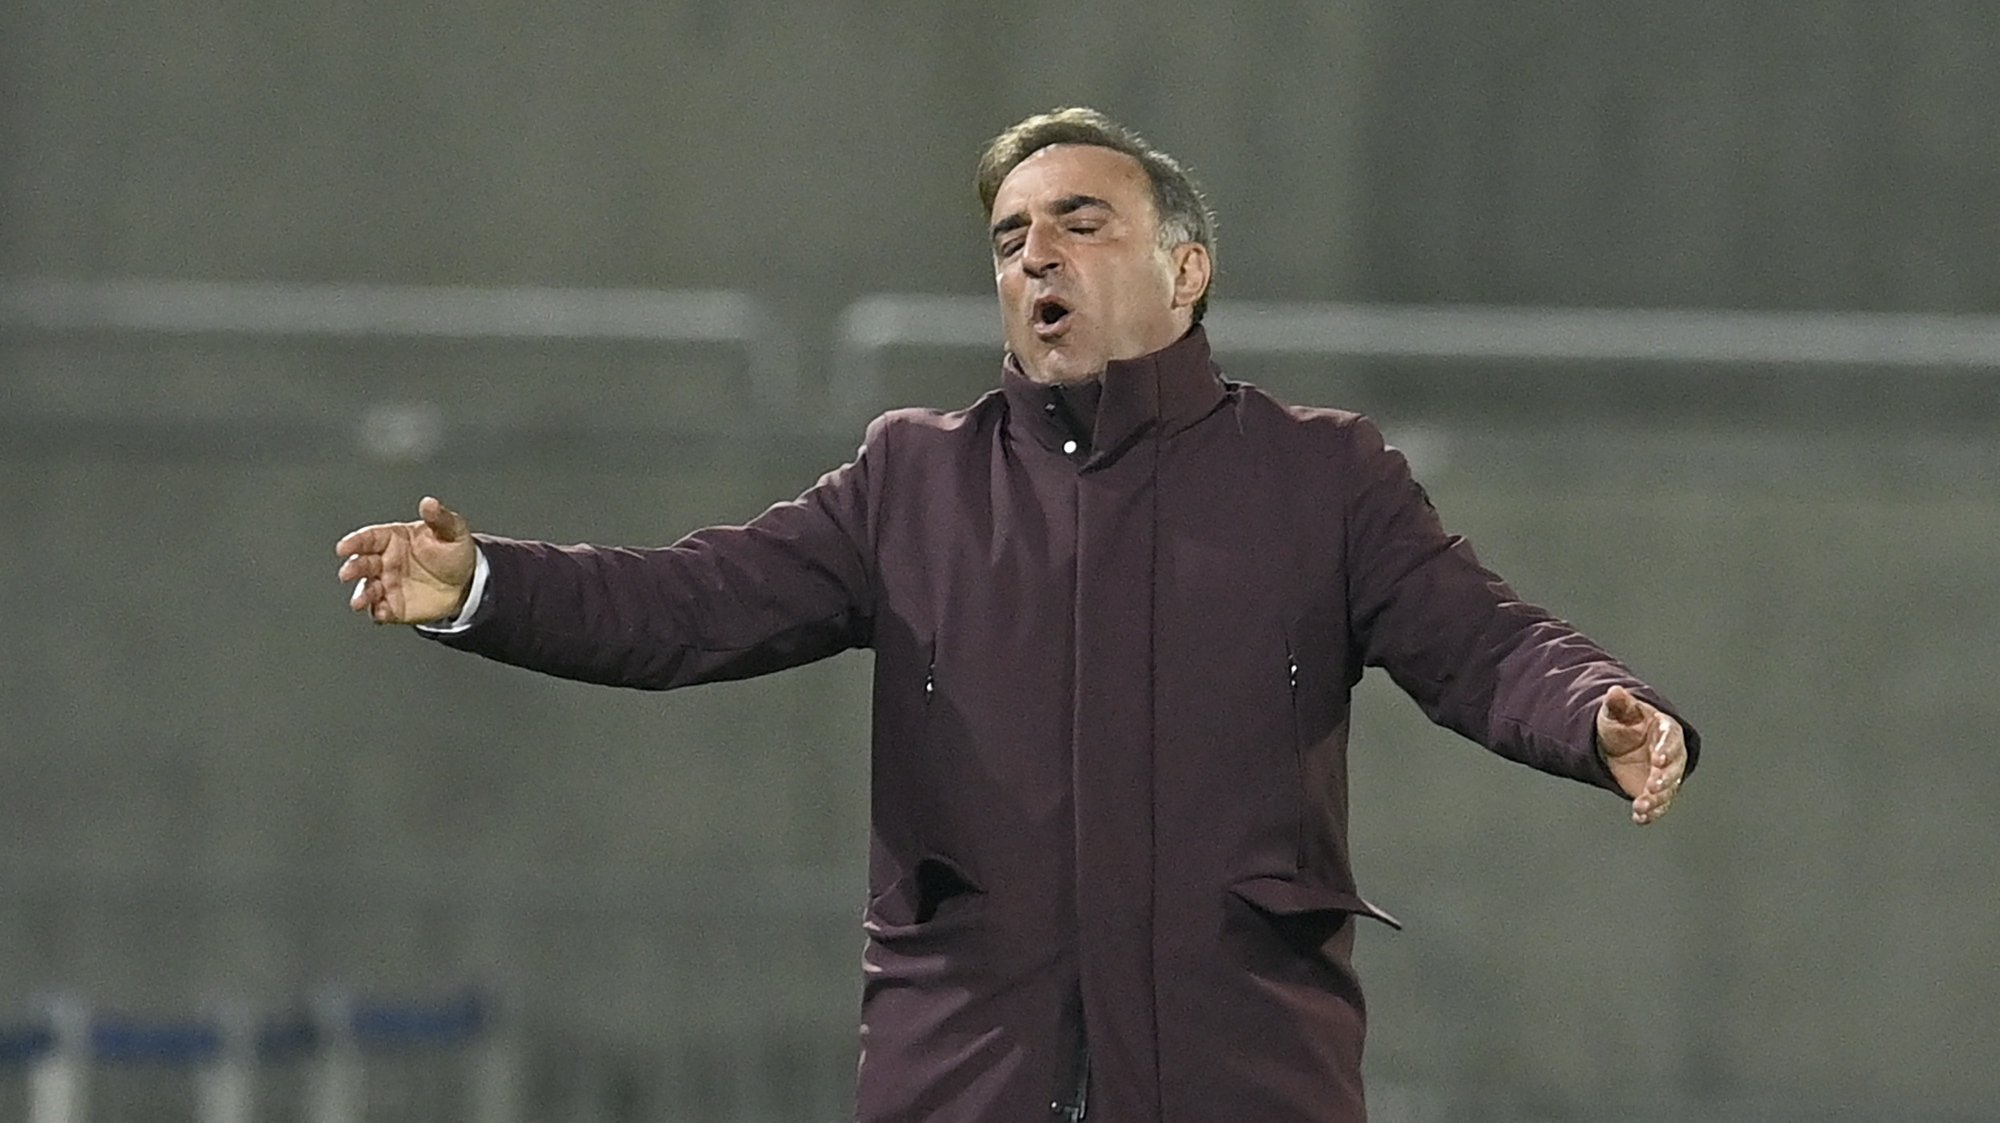 epa09536661 Braga's head coach Carlos Carvalhal reacts during the UEFA Europa League group stage soccer match between Ludogorets Razgrad and Sporting Braga in Razgrad, Bulgaria, 21 October 2021.  EPA/Vassil Donev